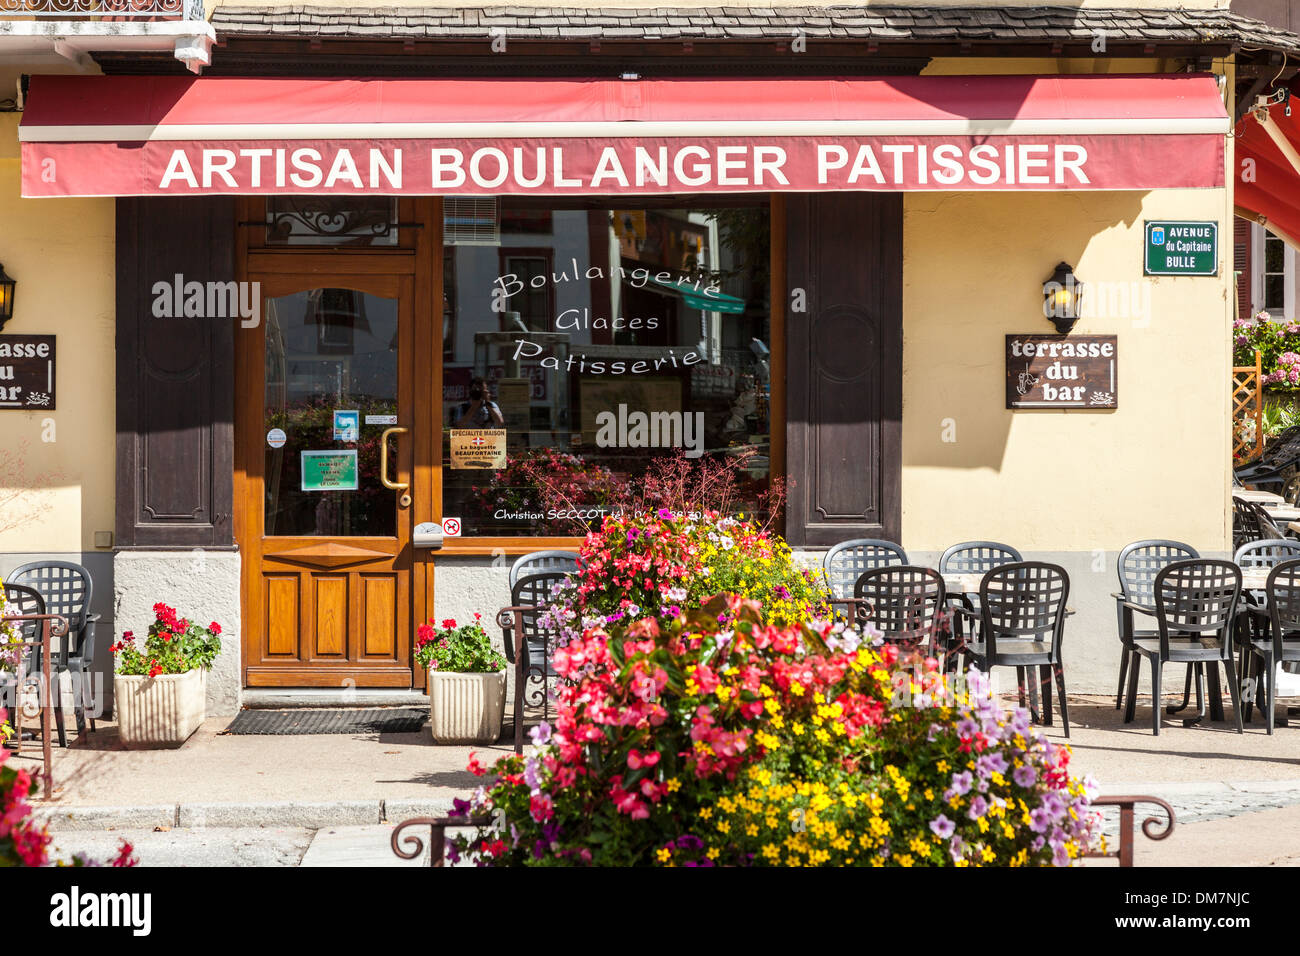 Artisan boulanger and patissier shop in the village of Beaufort, Savoie, France - Stock Image